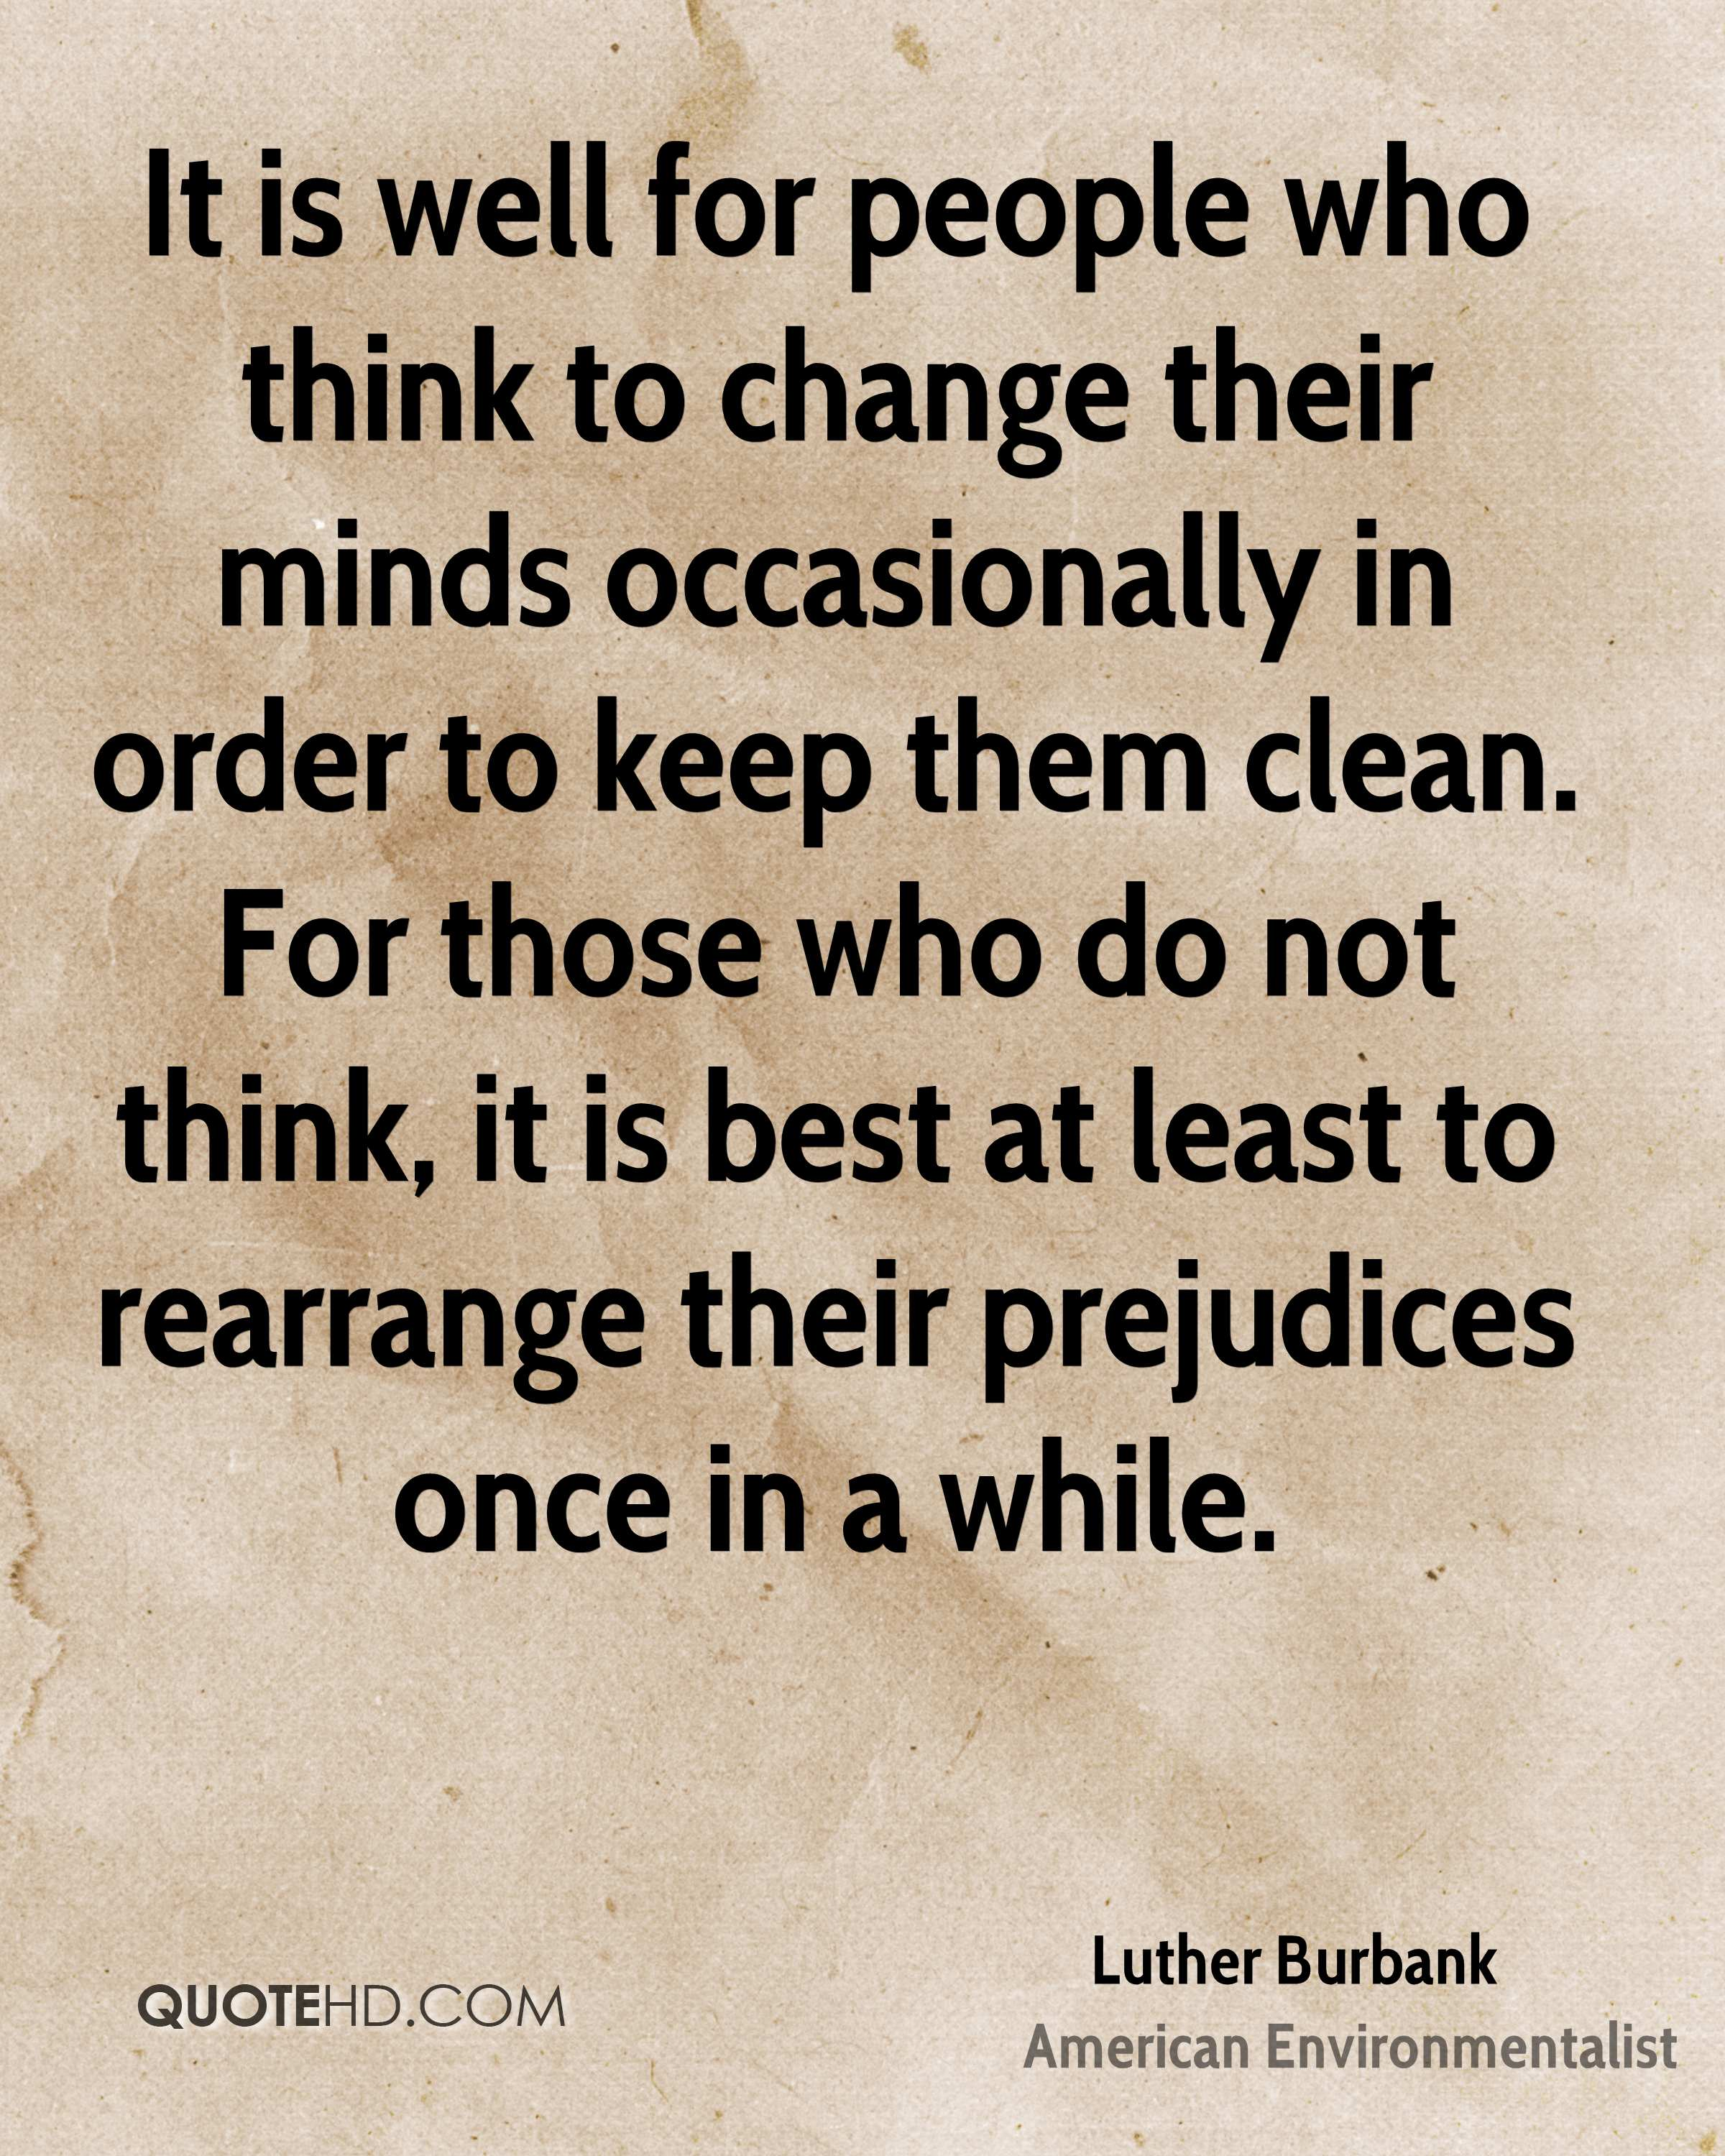 It is well for people who think to change their minds occasionally in order to keep them clean. For those who do not think, it is best at least to rearrange their prejudices once in a while.